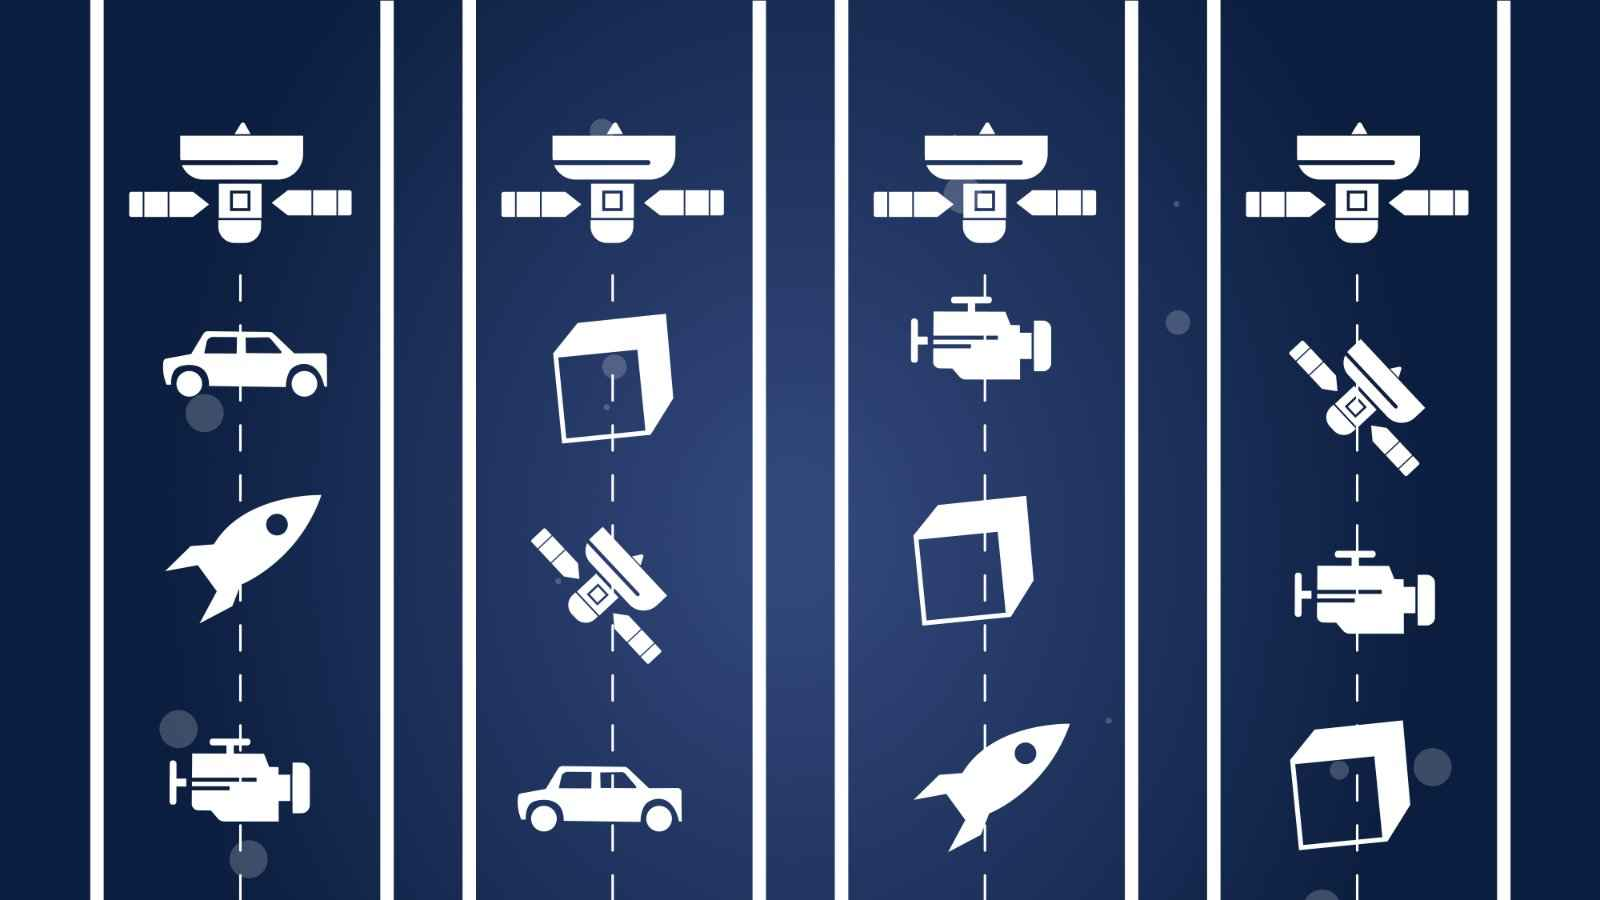 Devices whose operation depends on satellites